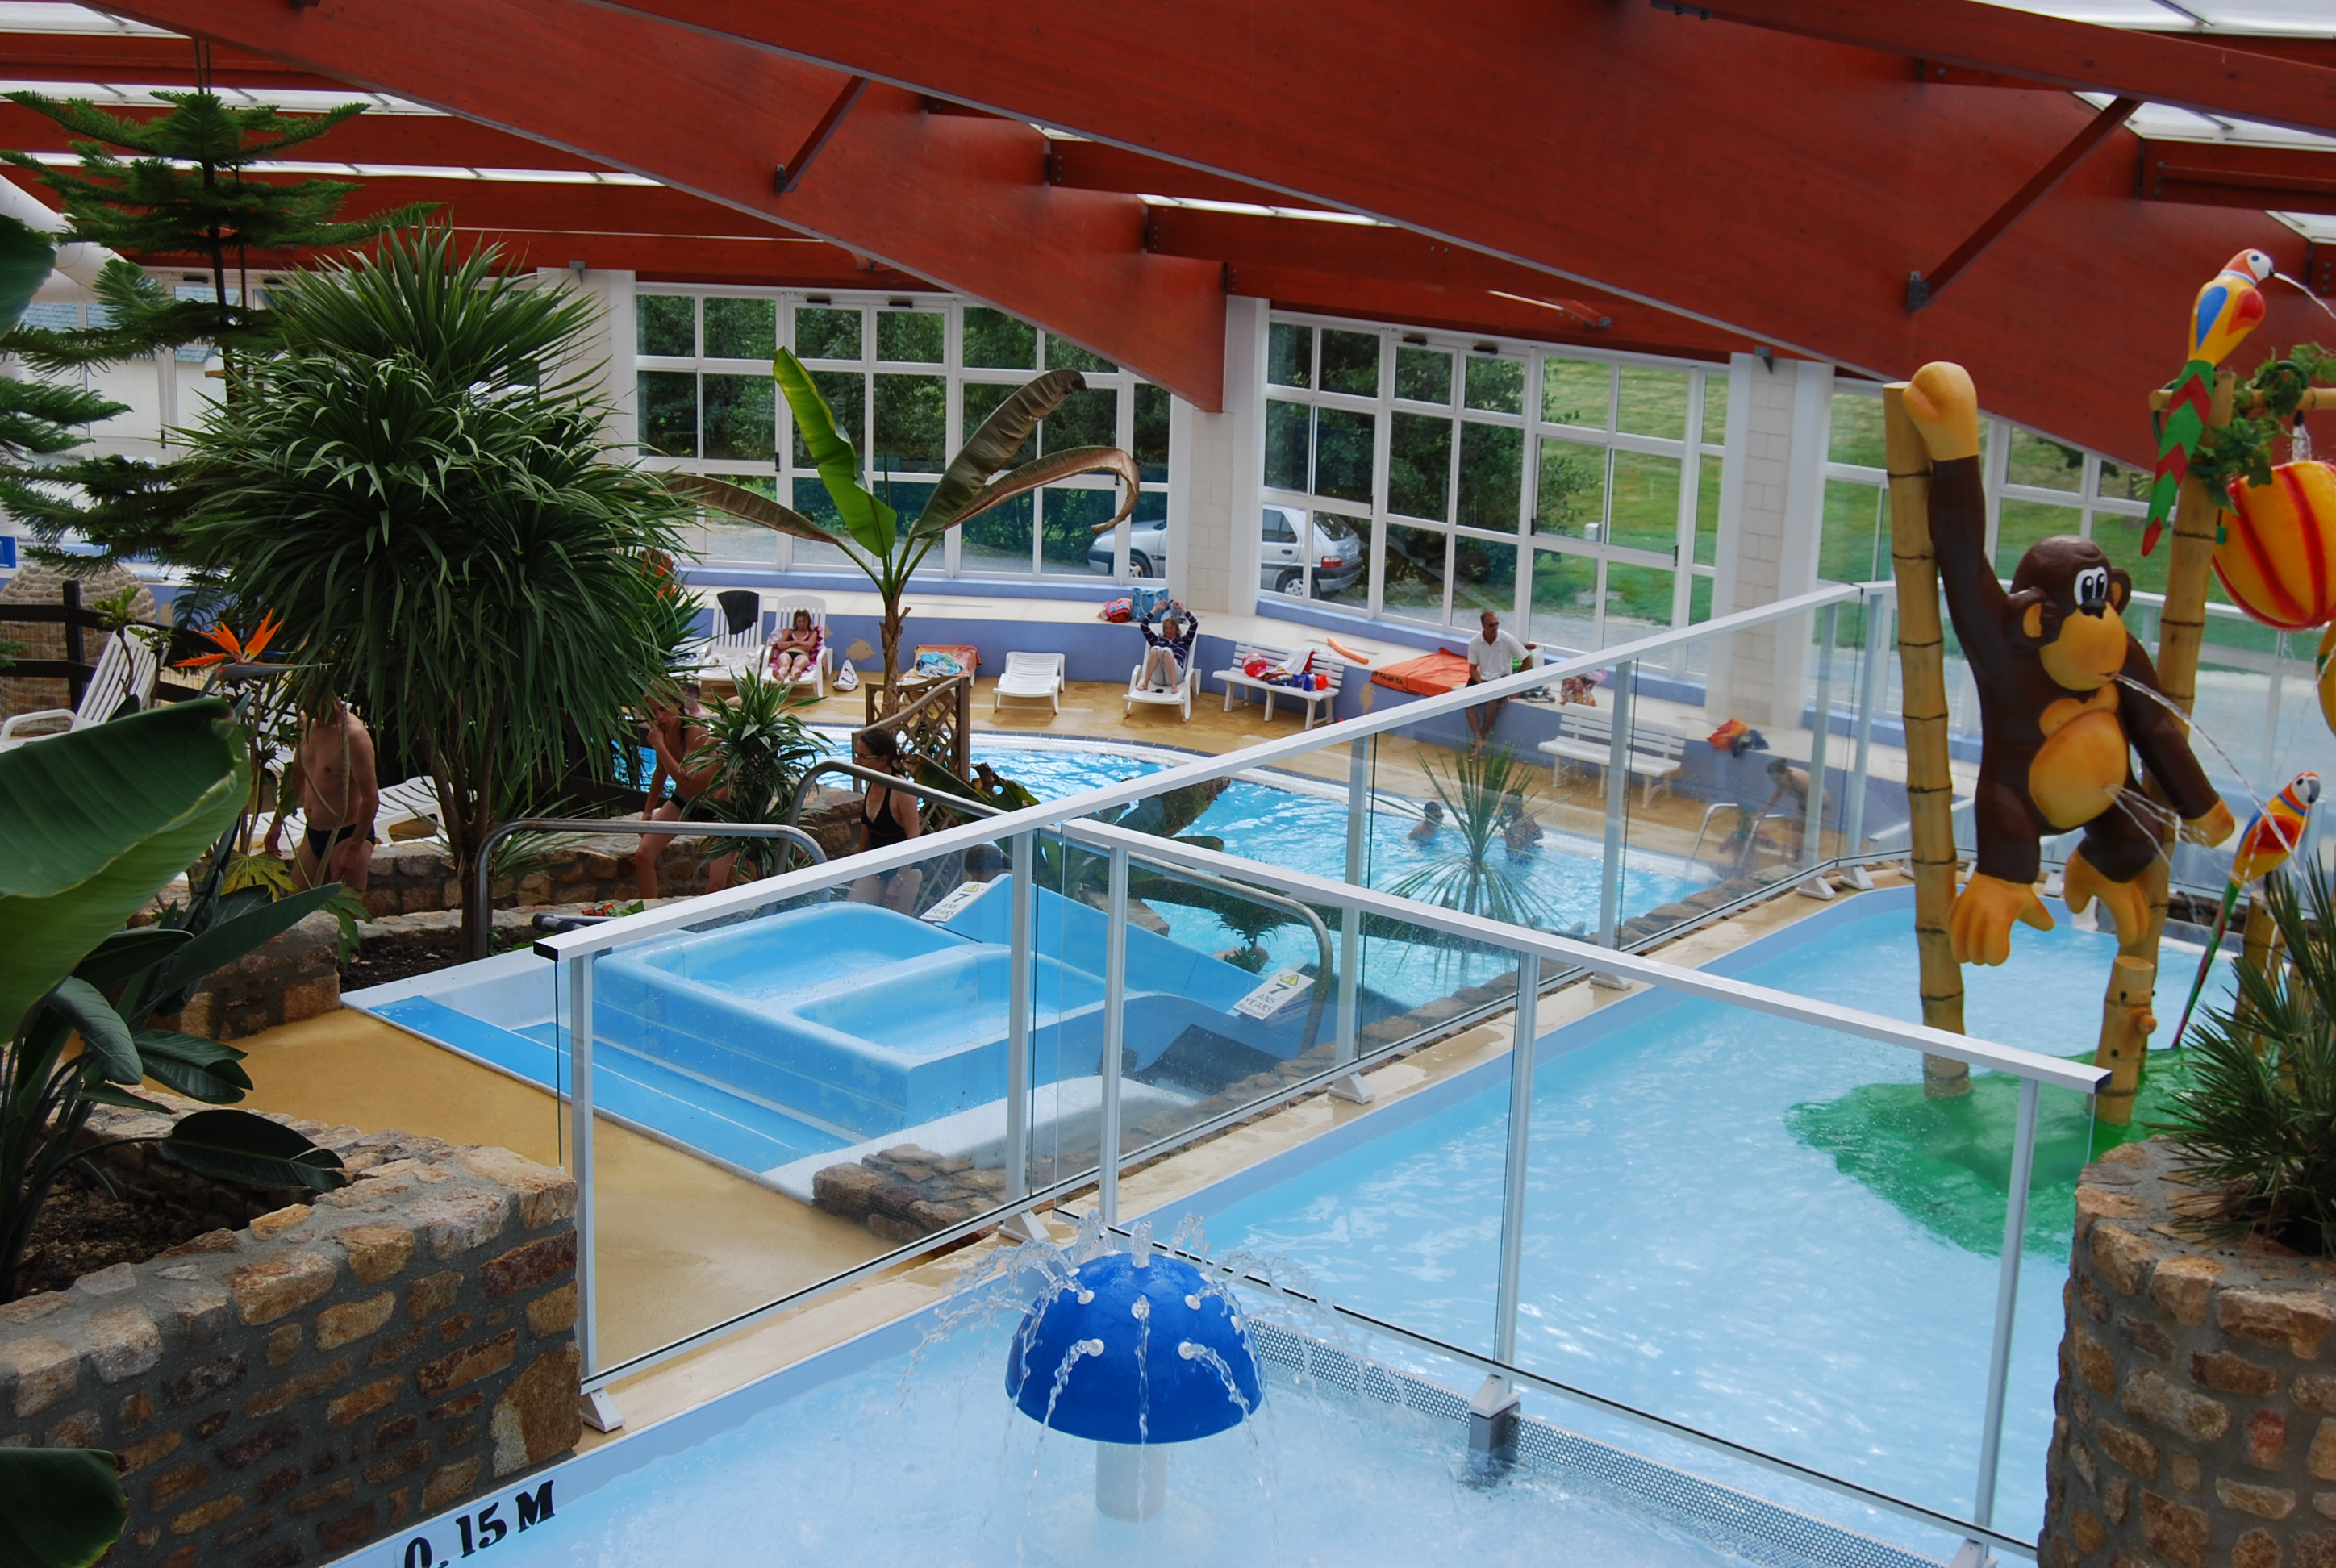 Camping avec piscine couverte en normandie camping en for Camping piscine normandie